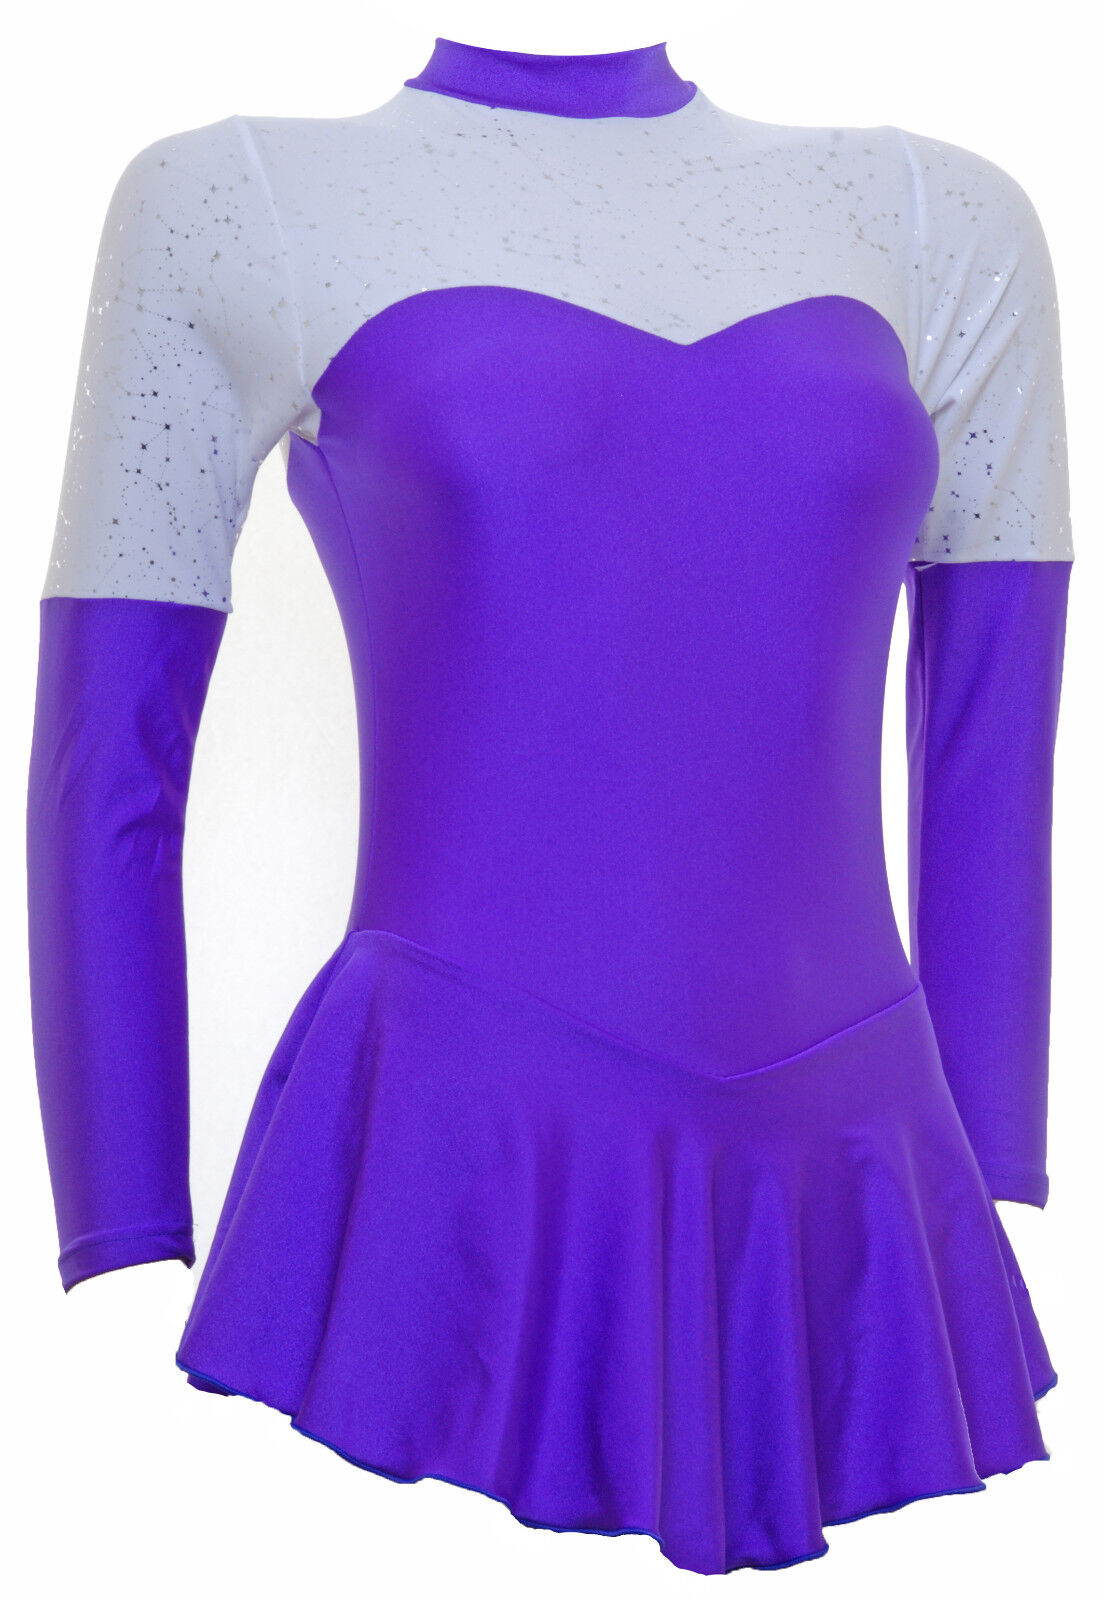 Skating Dress -PURPLE LYCRA WHITE Con -LONG SLEEVE ALL SIZES AVAILABLE